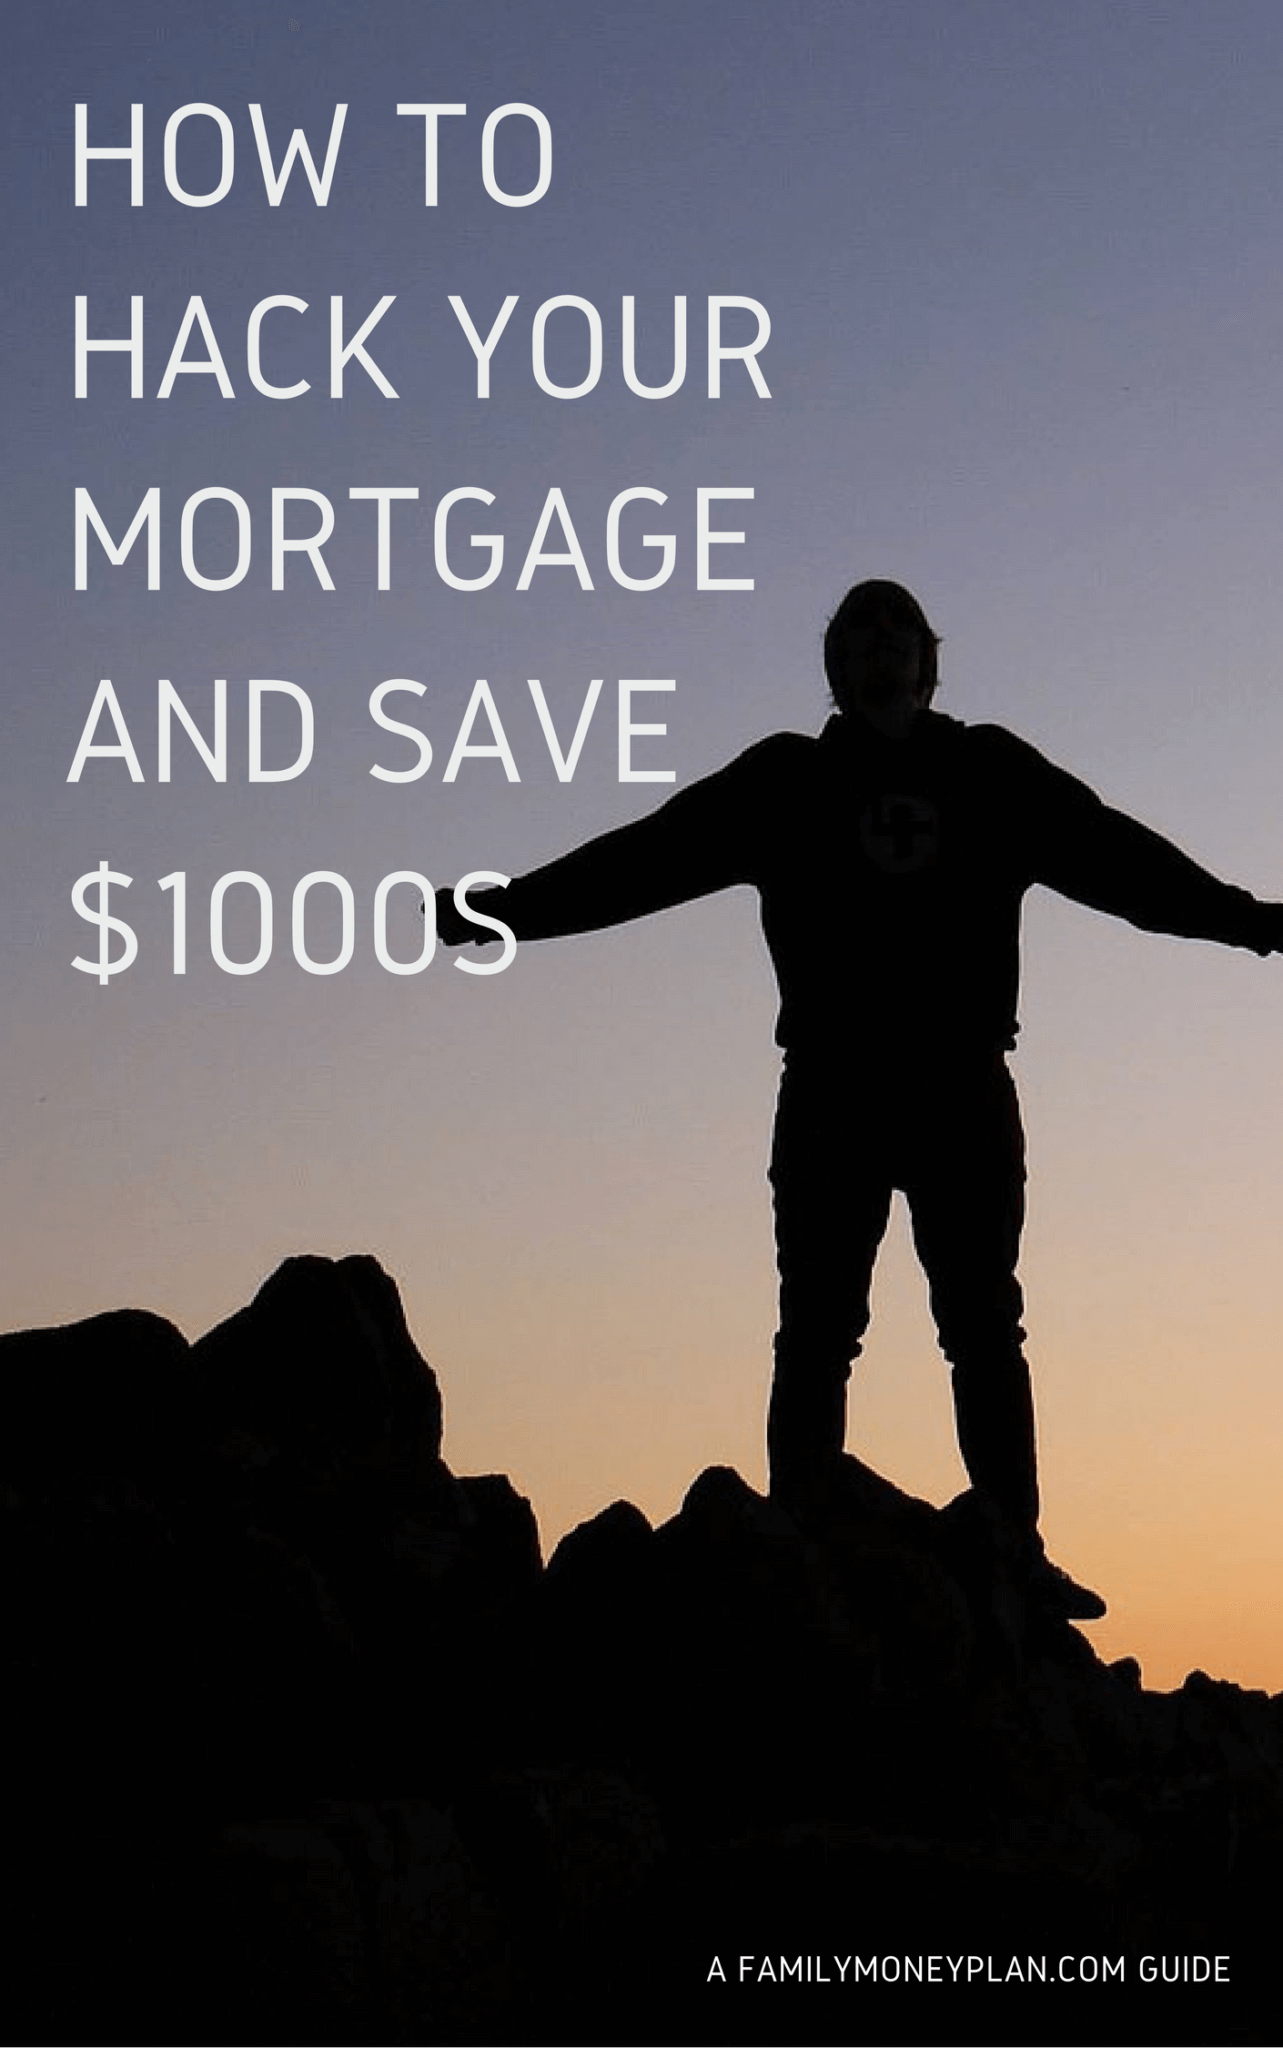 Don't buy into the 30 year mortgage. There is another way. Learn the techniques we used to pay off our mortgage in only 6 years | Mortgage |